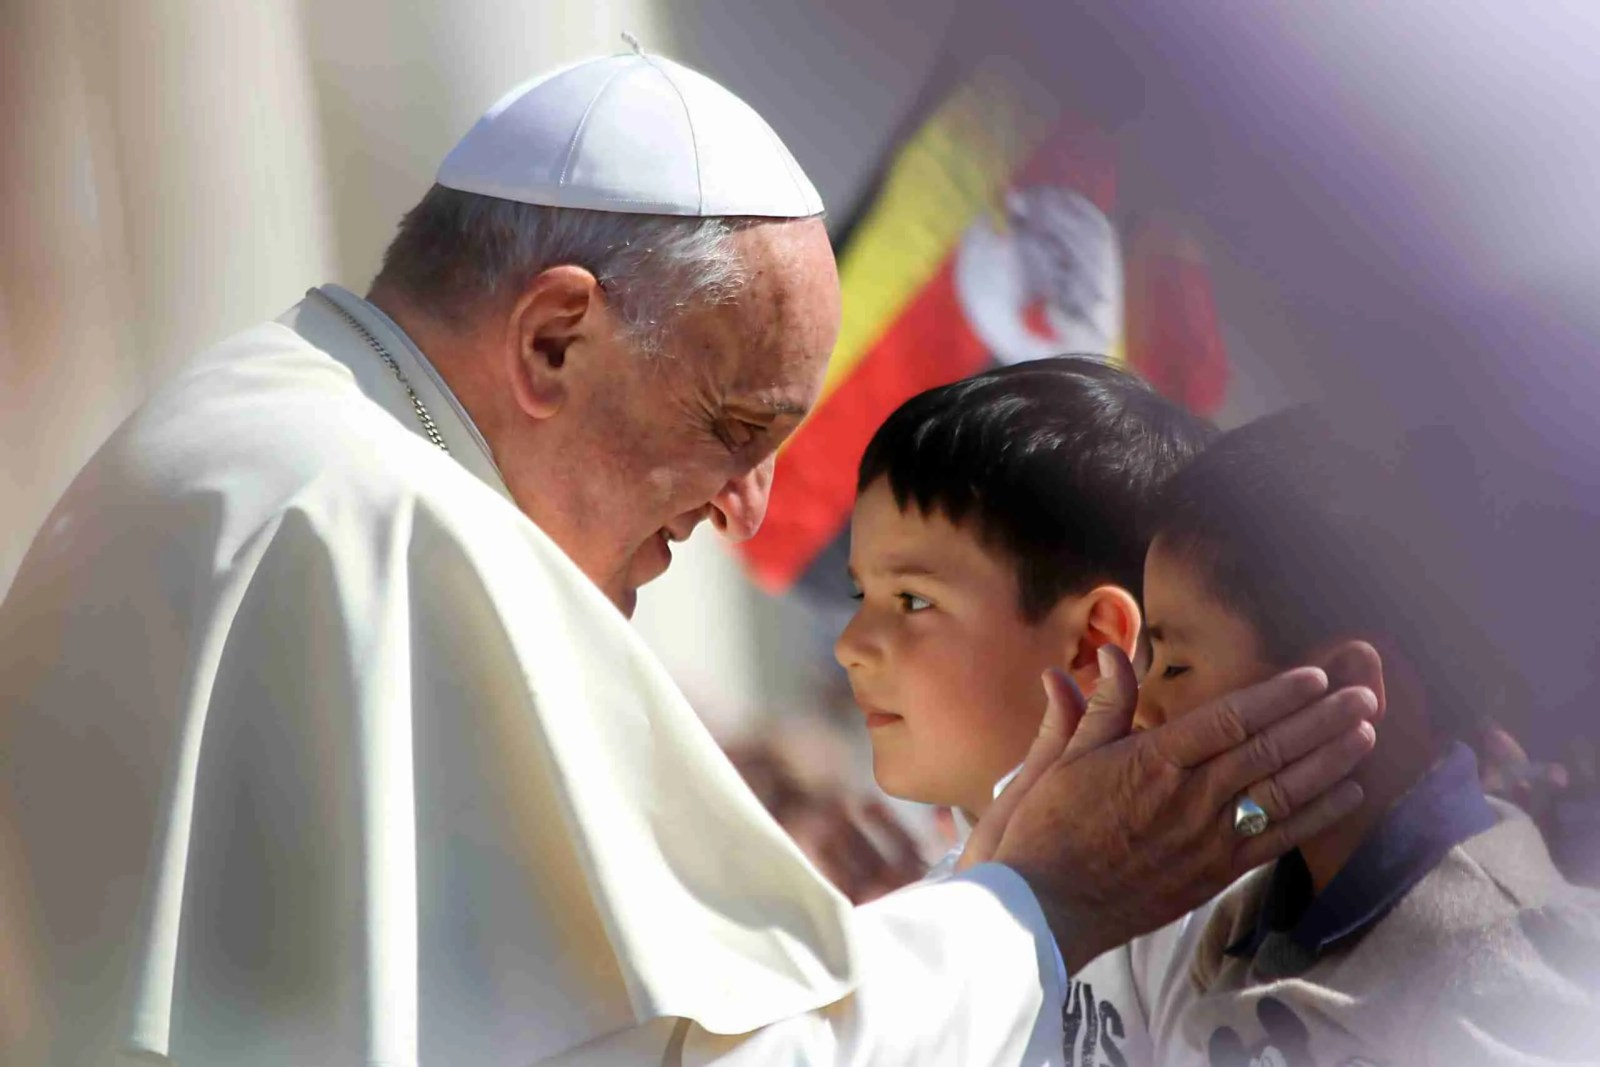 Is Pope Francis Right in Allowing Married Priests in the Church? 7